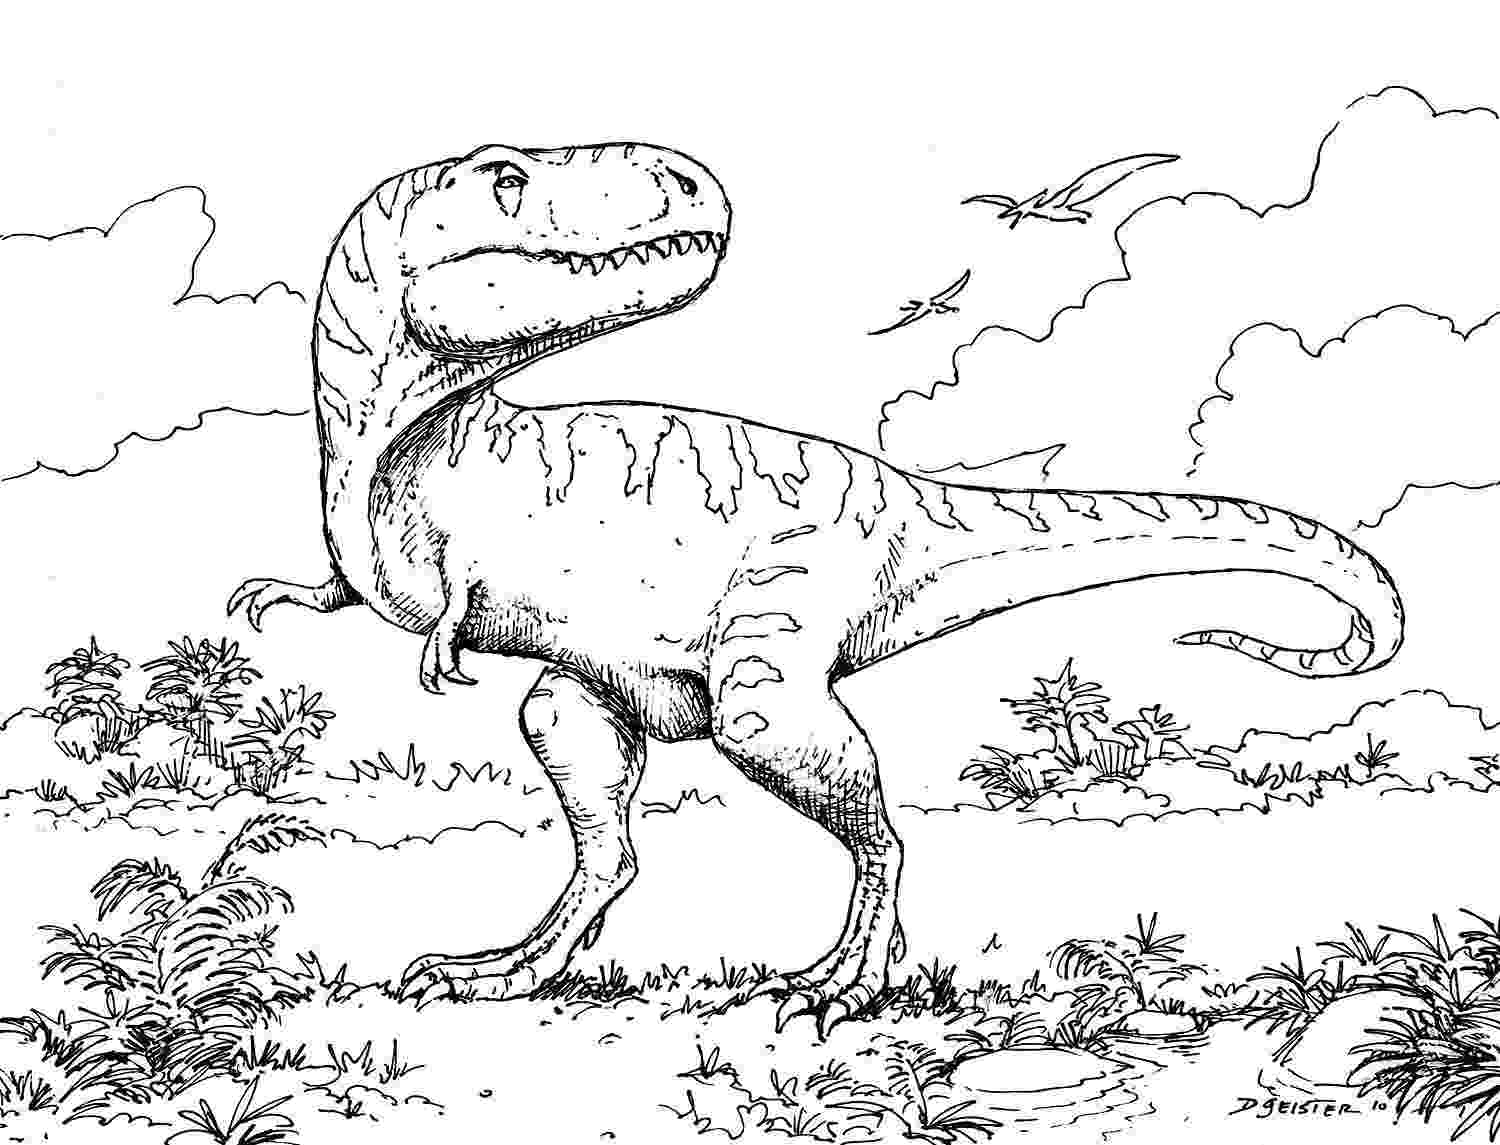 printable dinosaur pictures to color free printable dinosaur coloring pages for kids printable to pictures color dinosaur